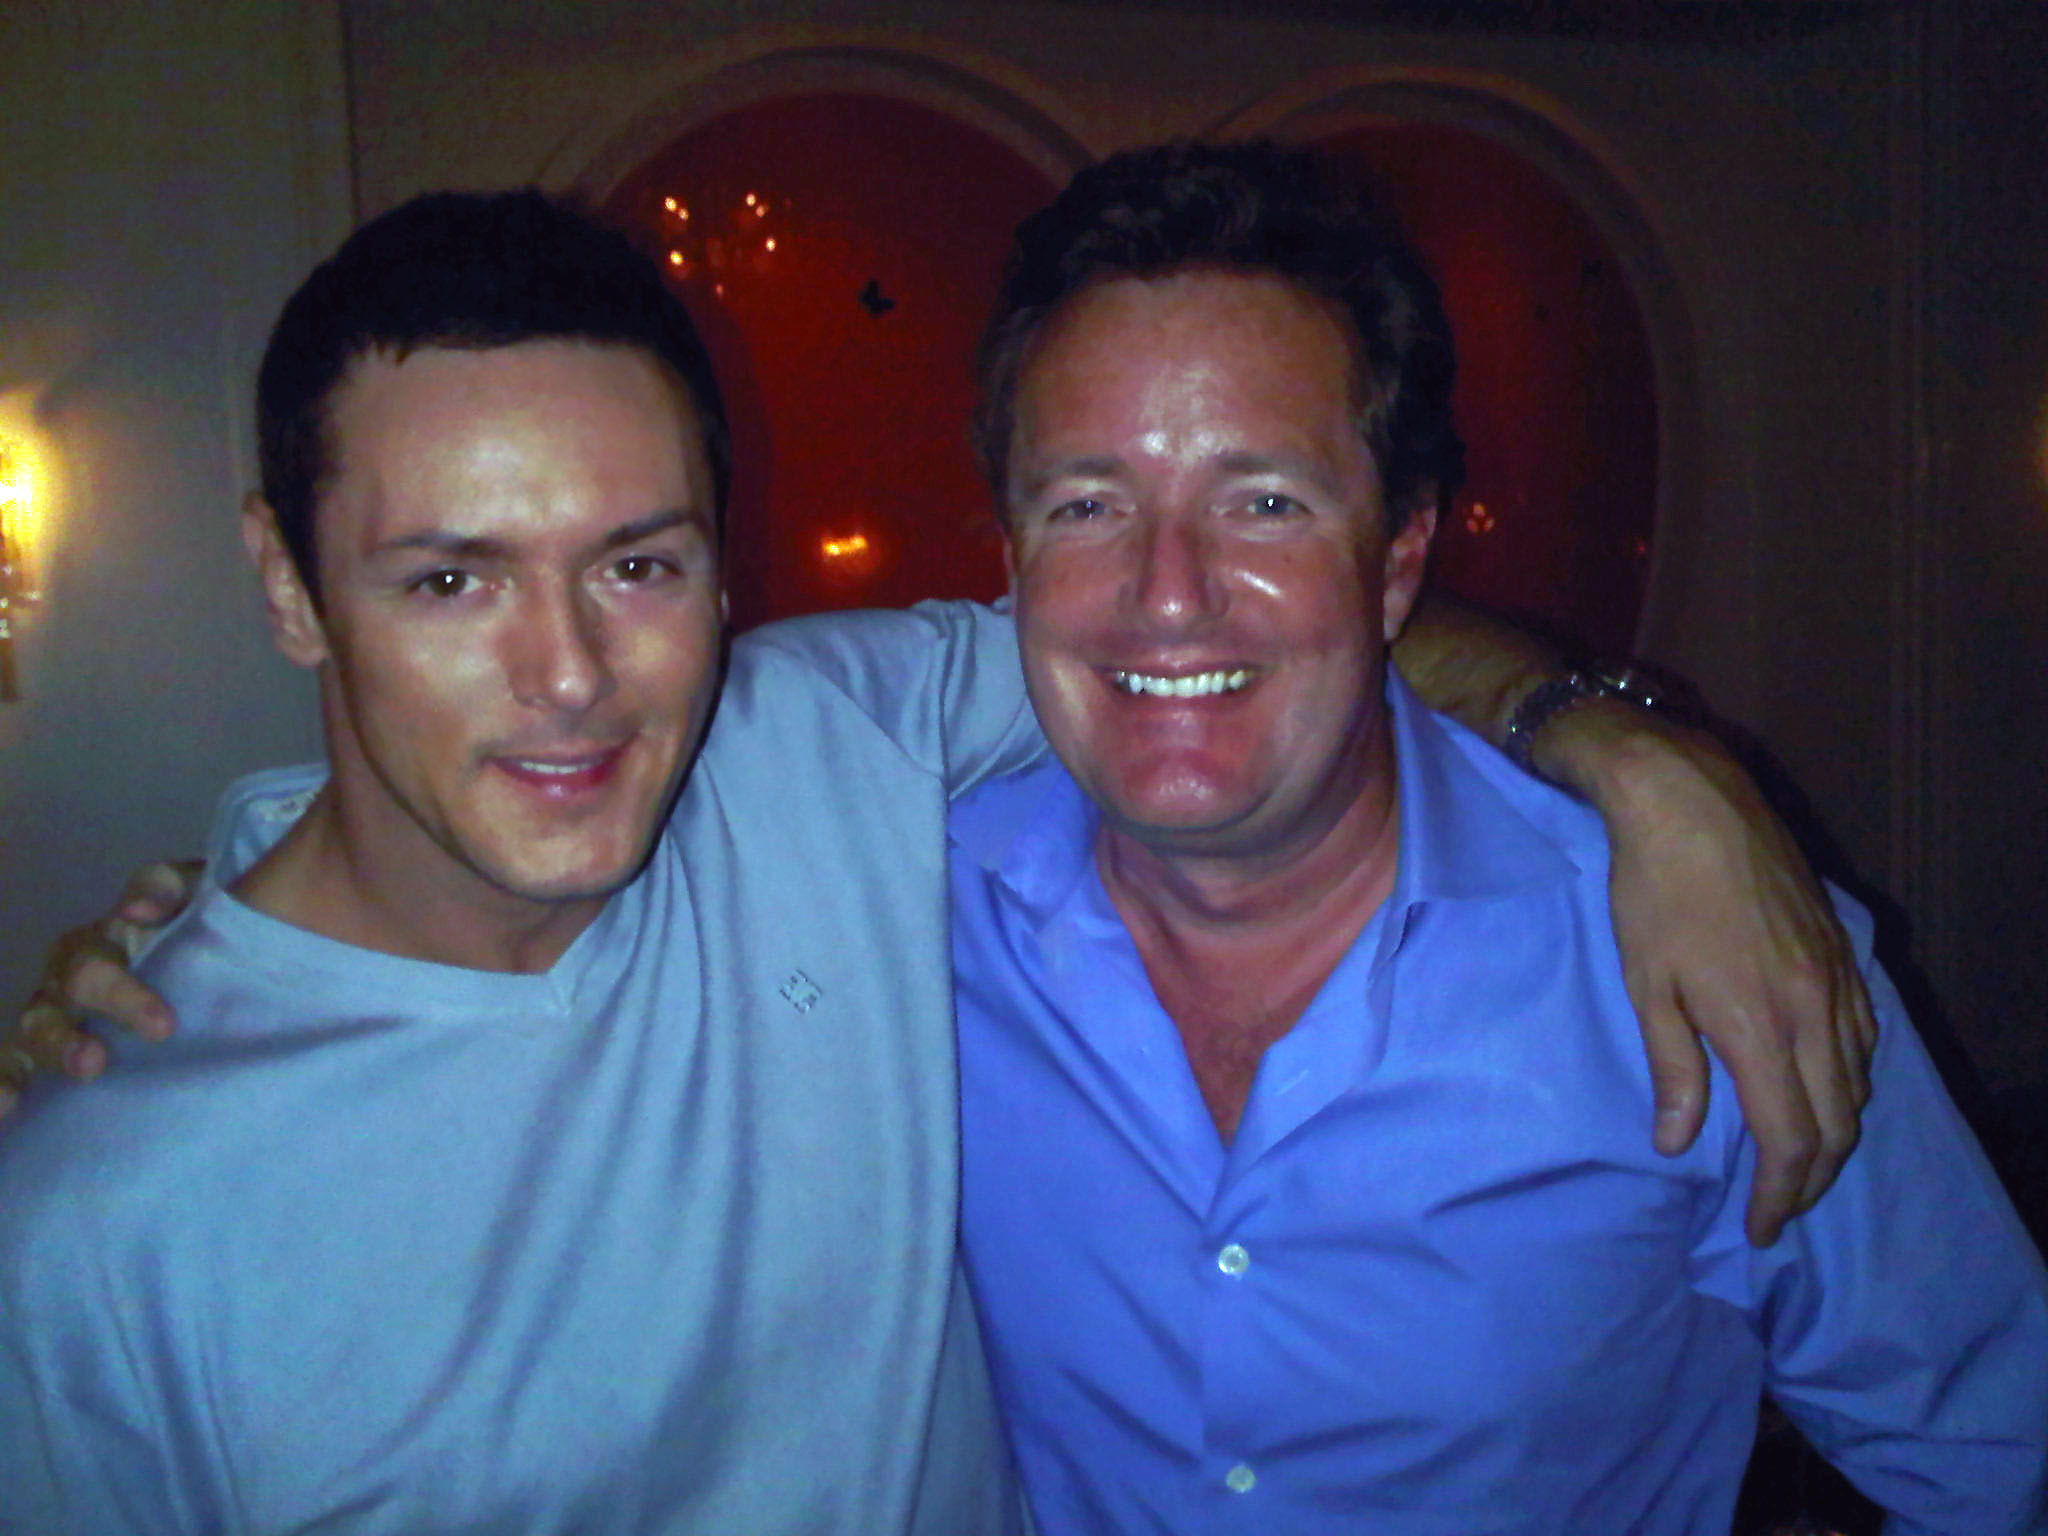 Sean Borg with Piers Morgan